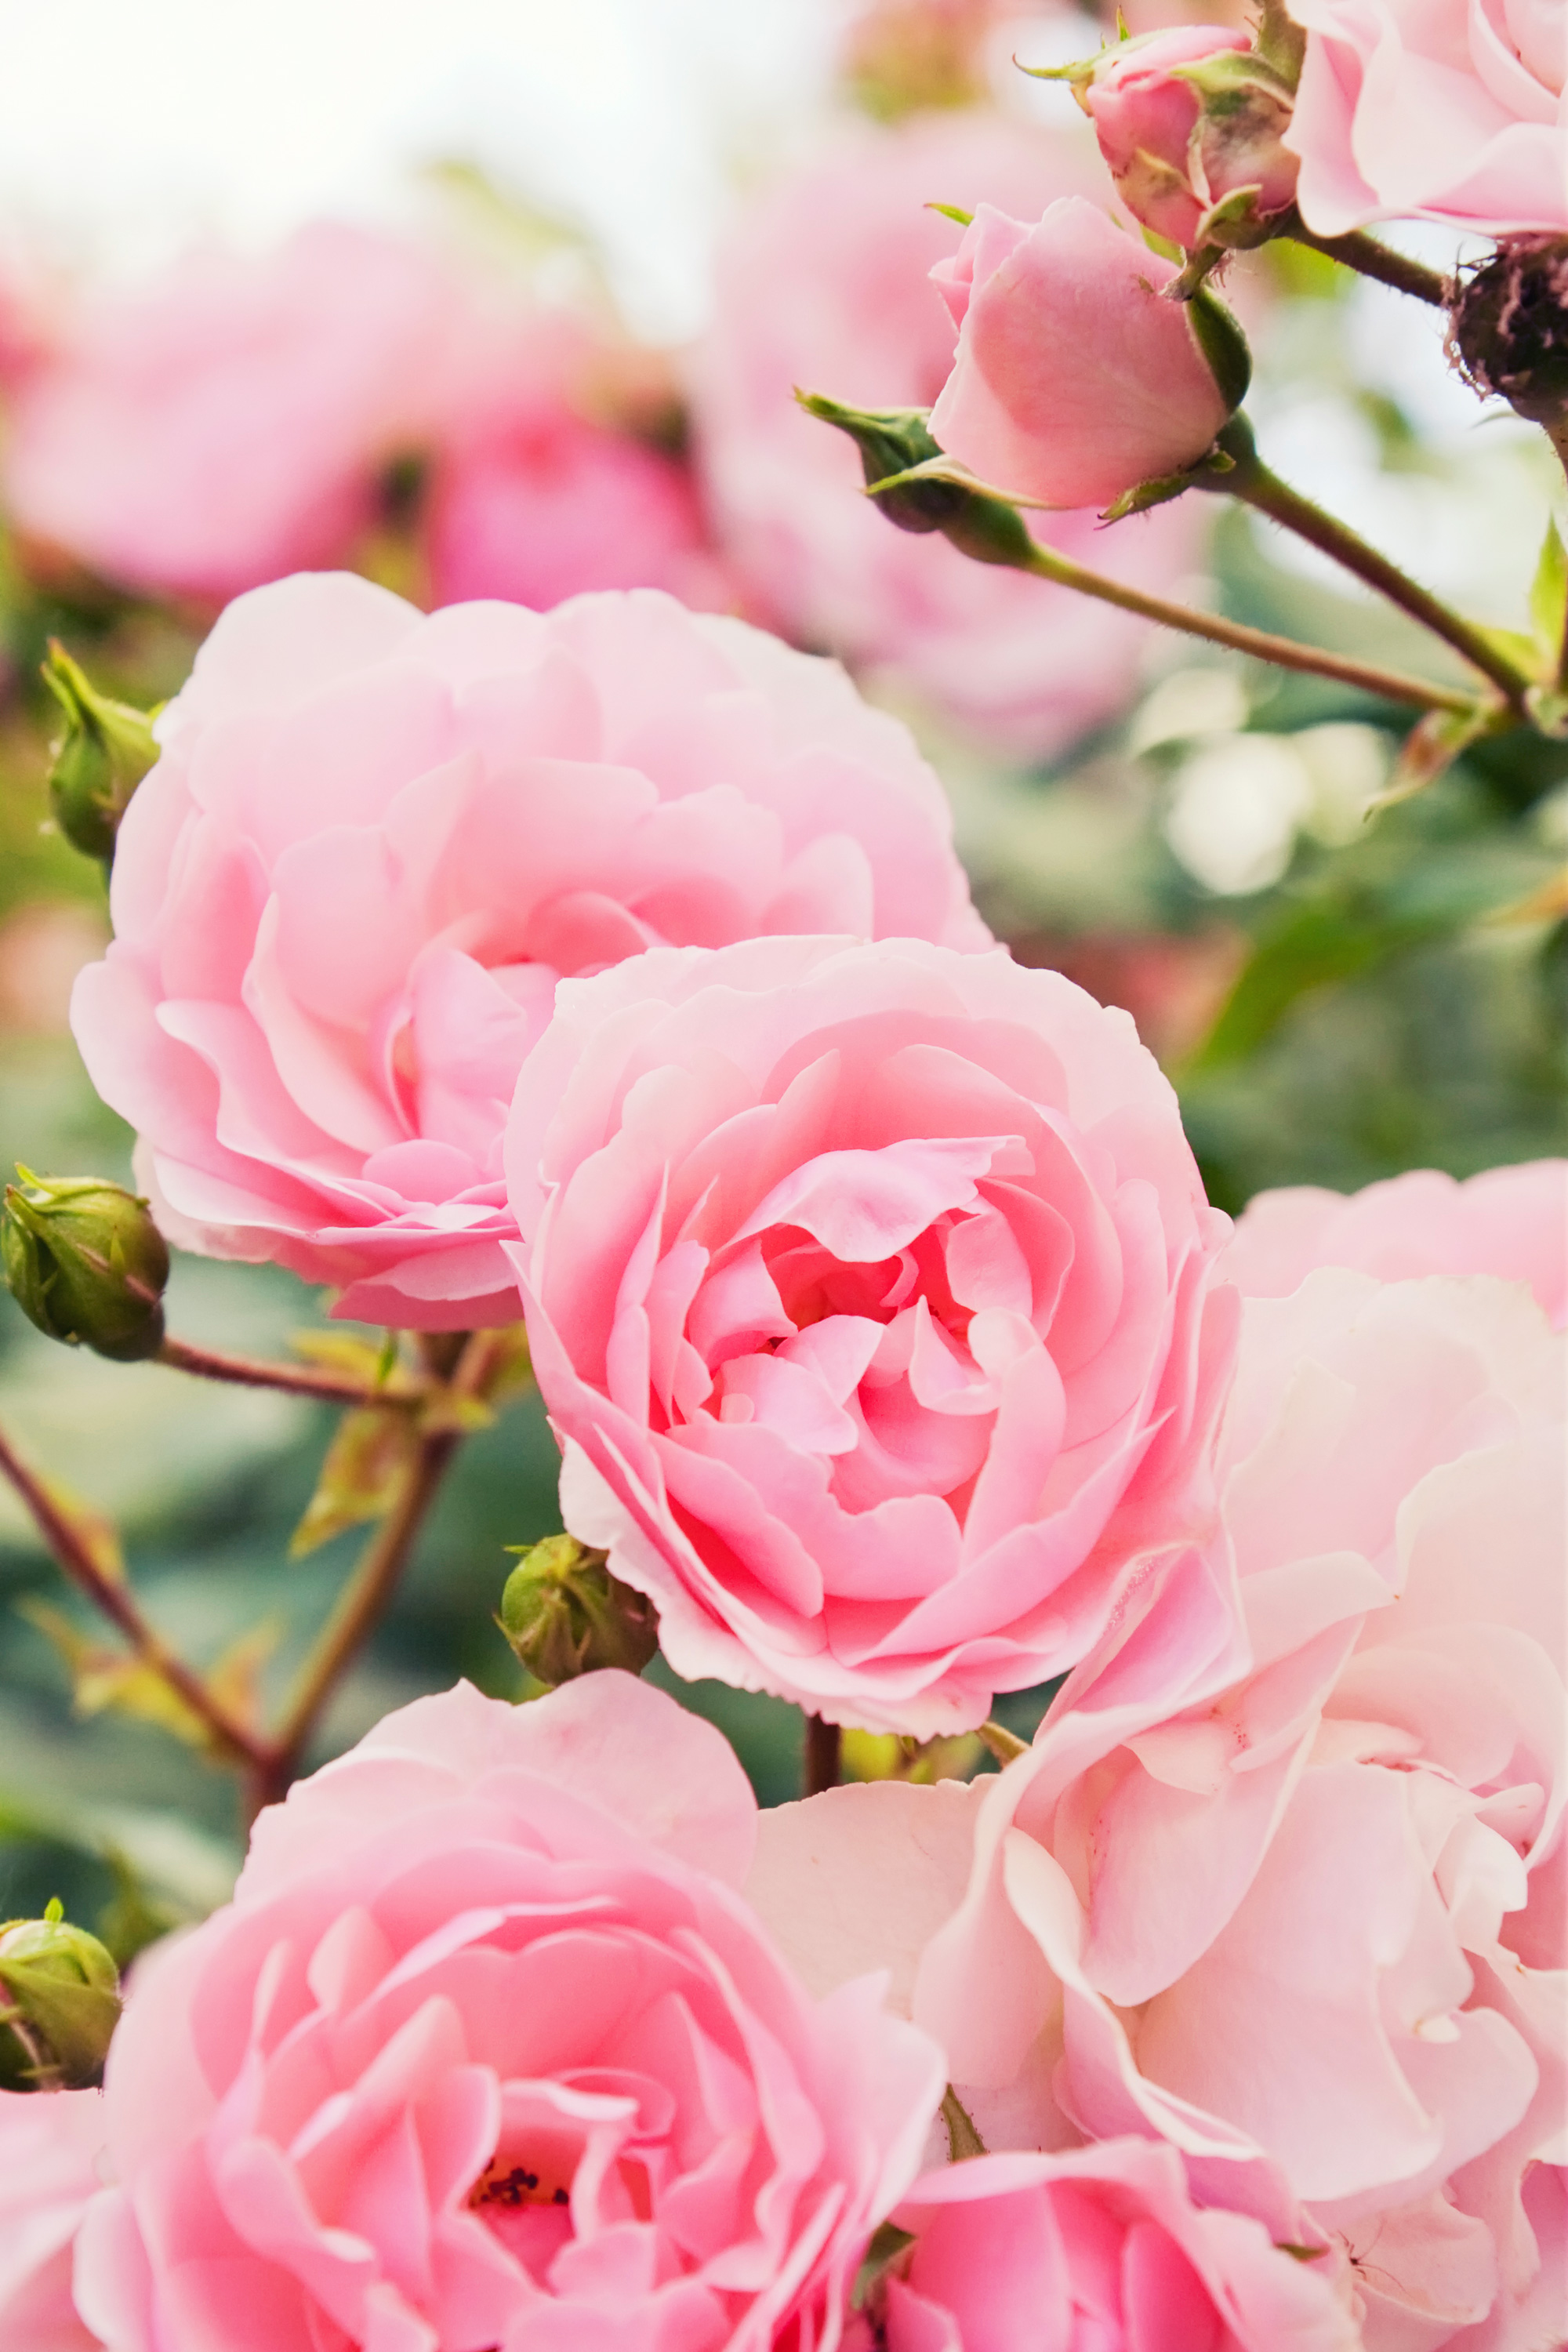 How to Choose the Right Type of Garden Rose for Your Yard